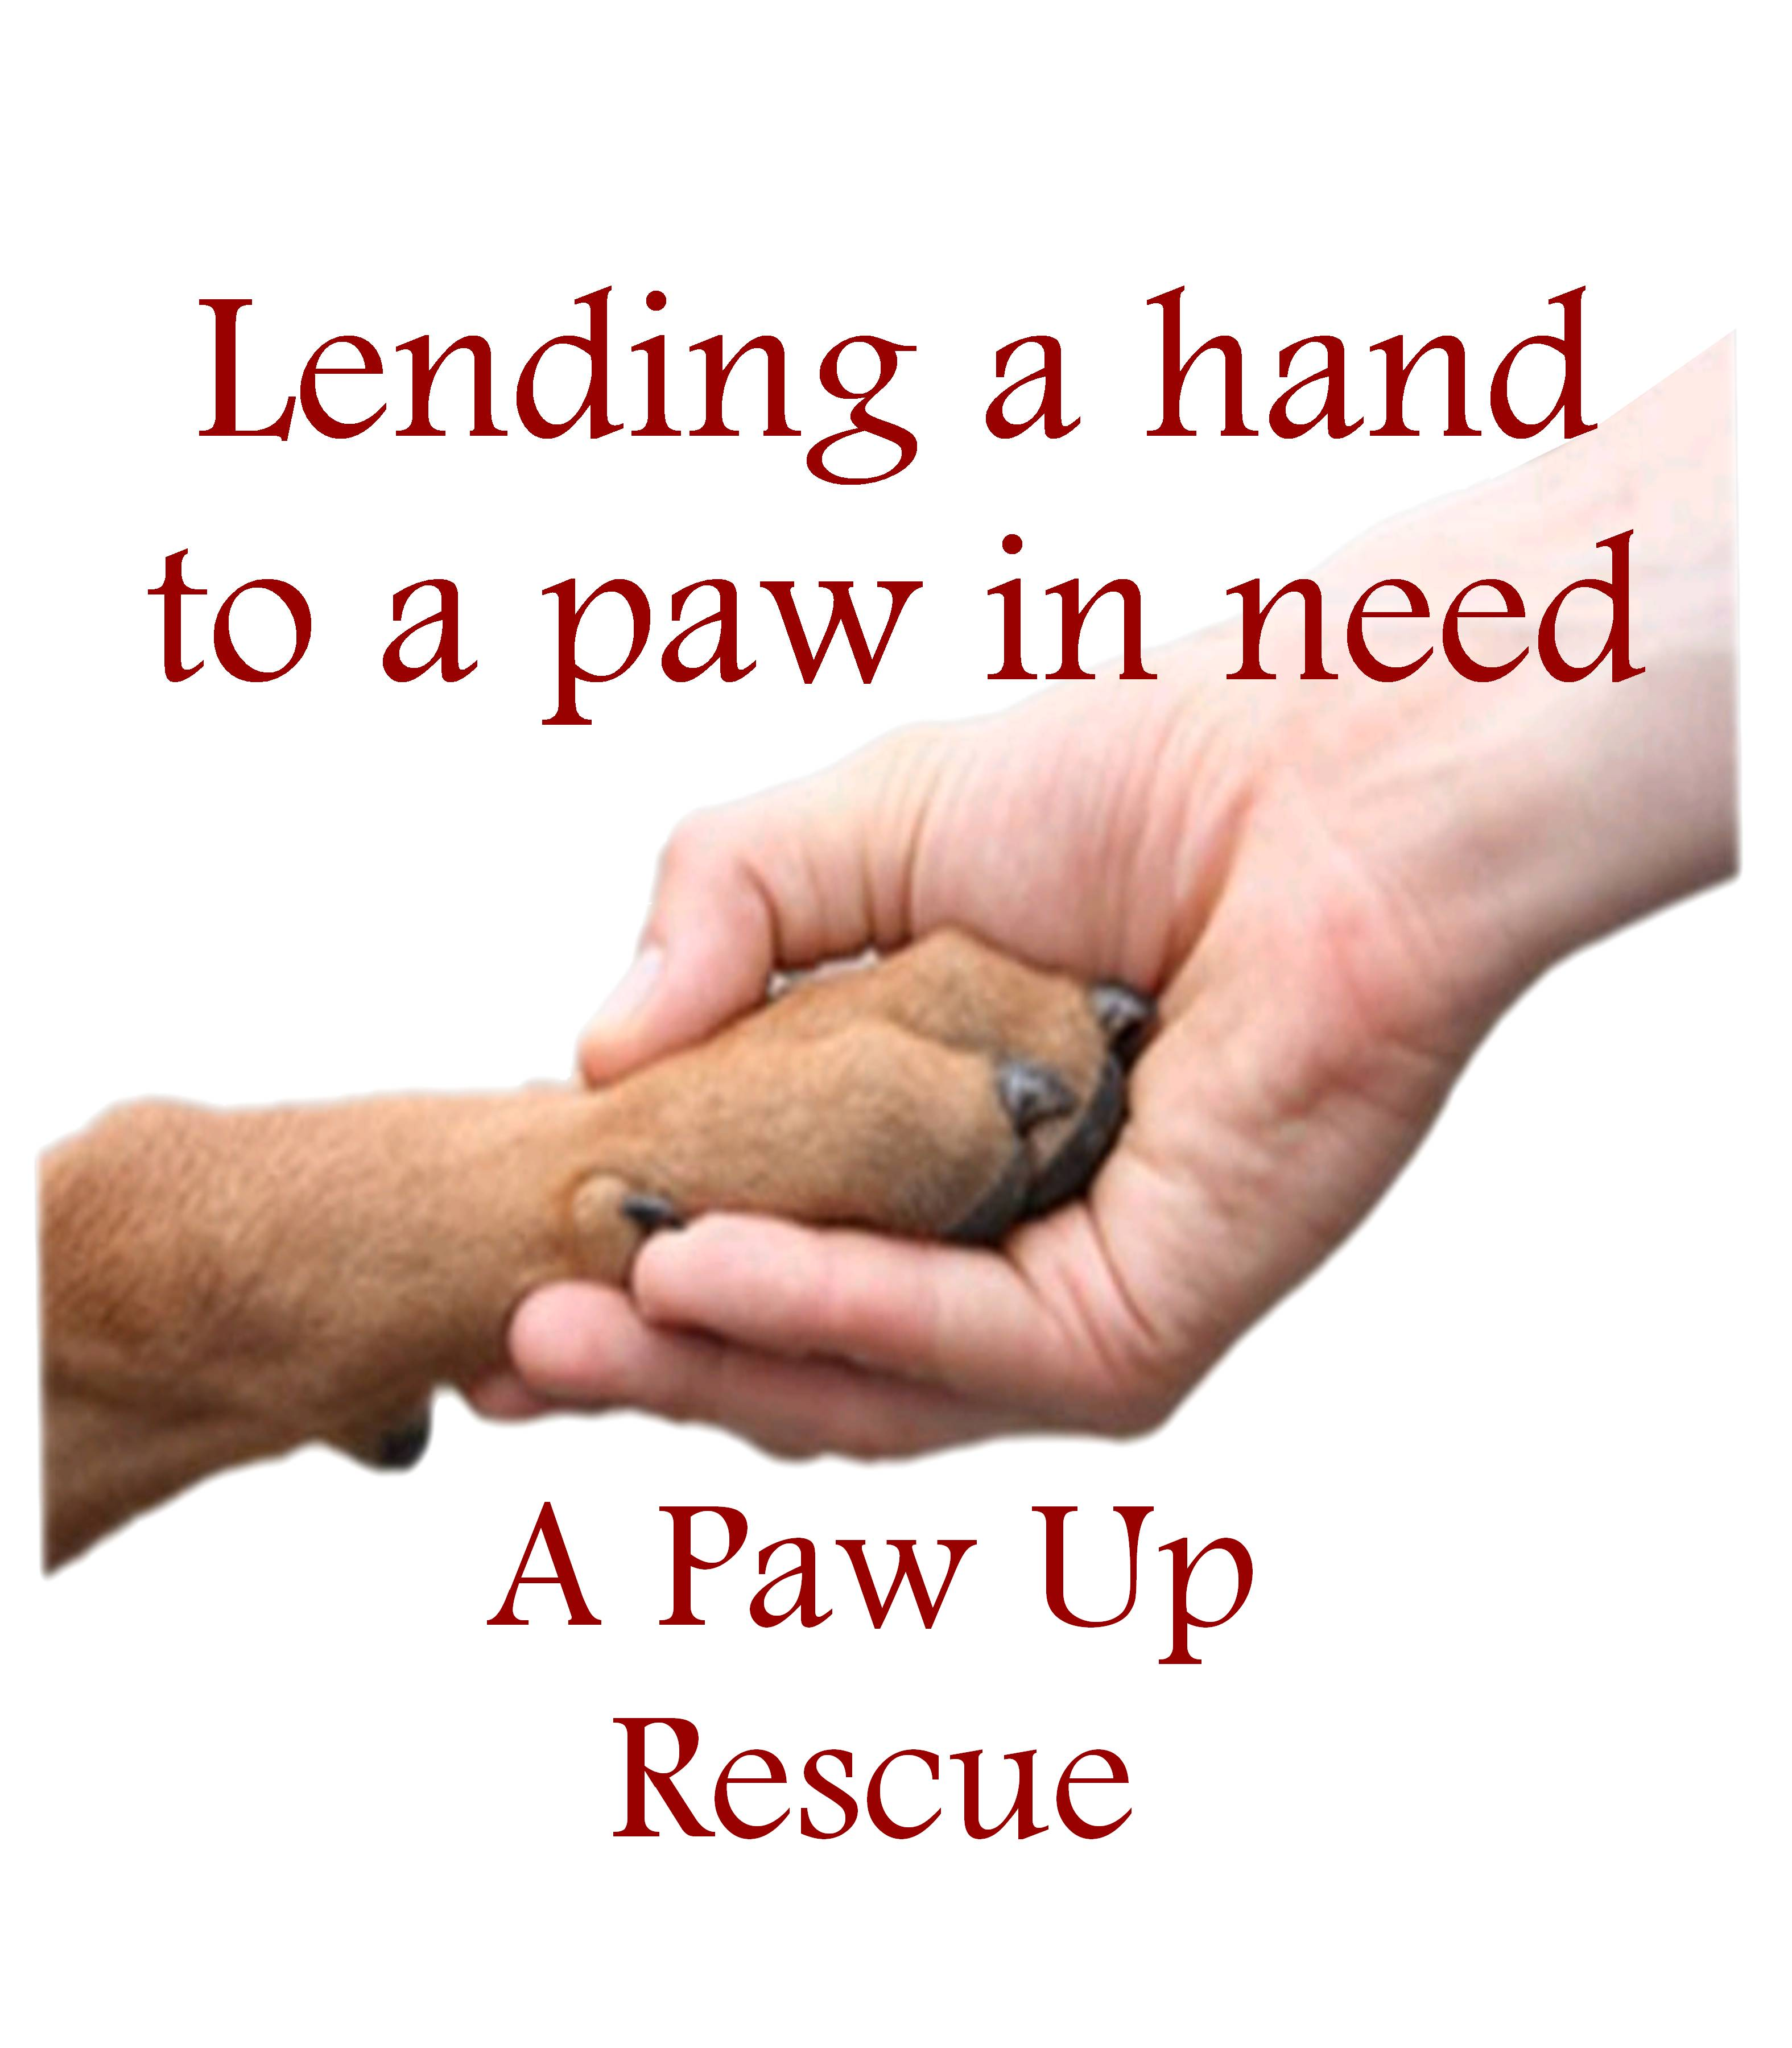 A Paw Up Rescue